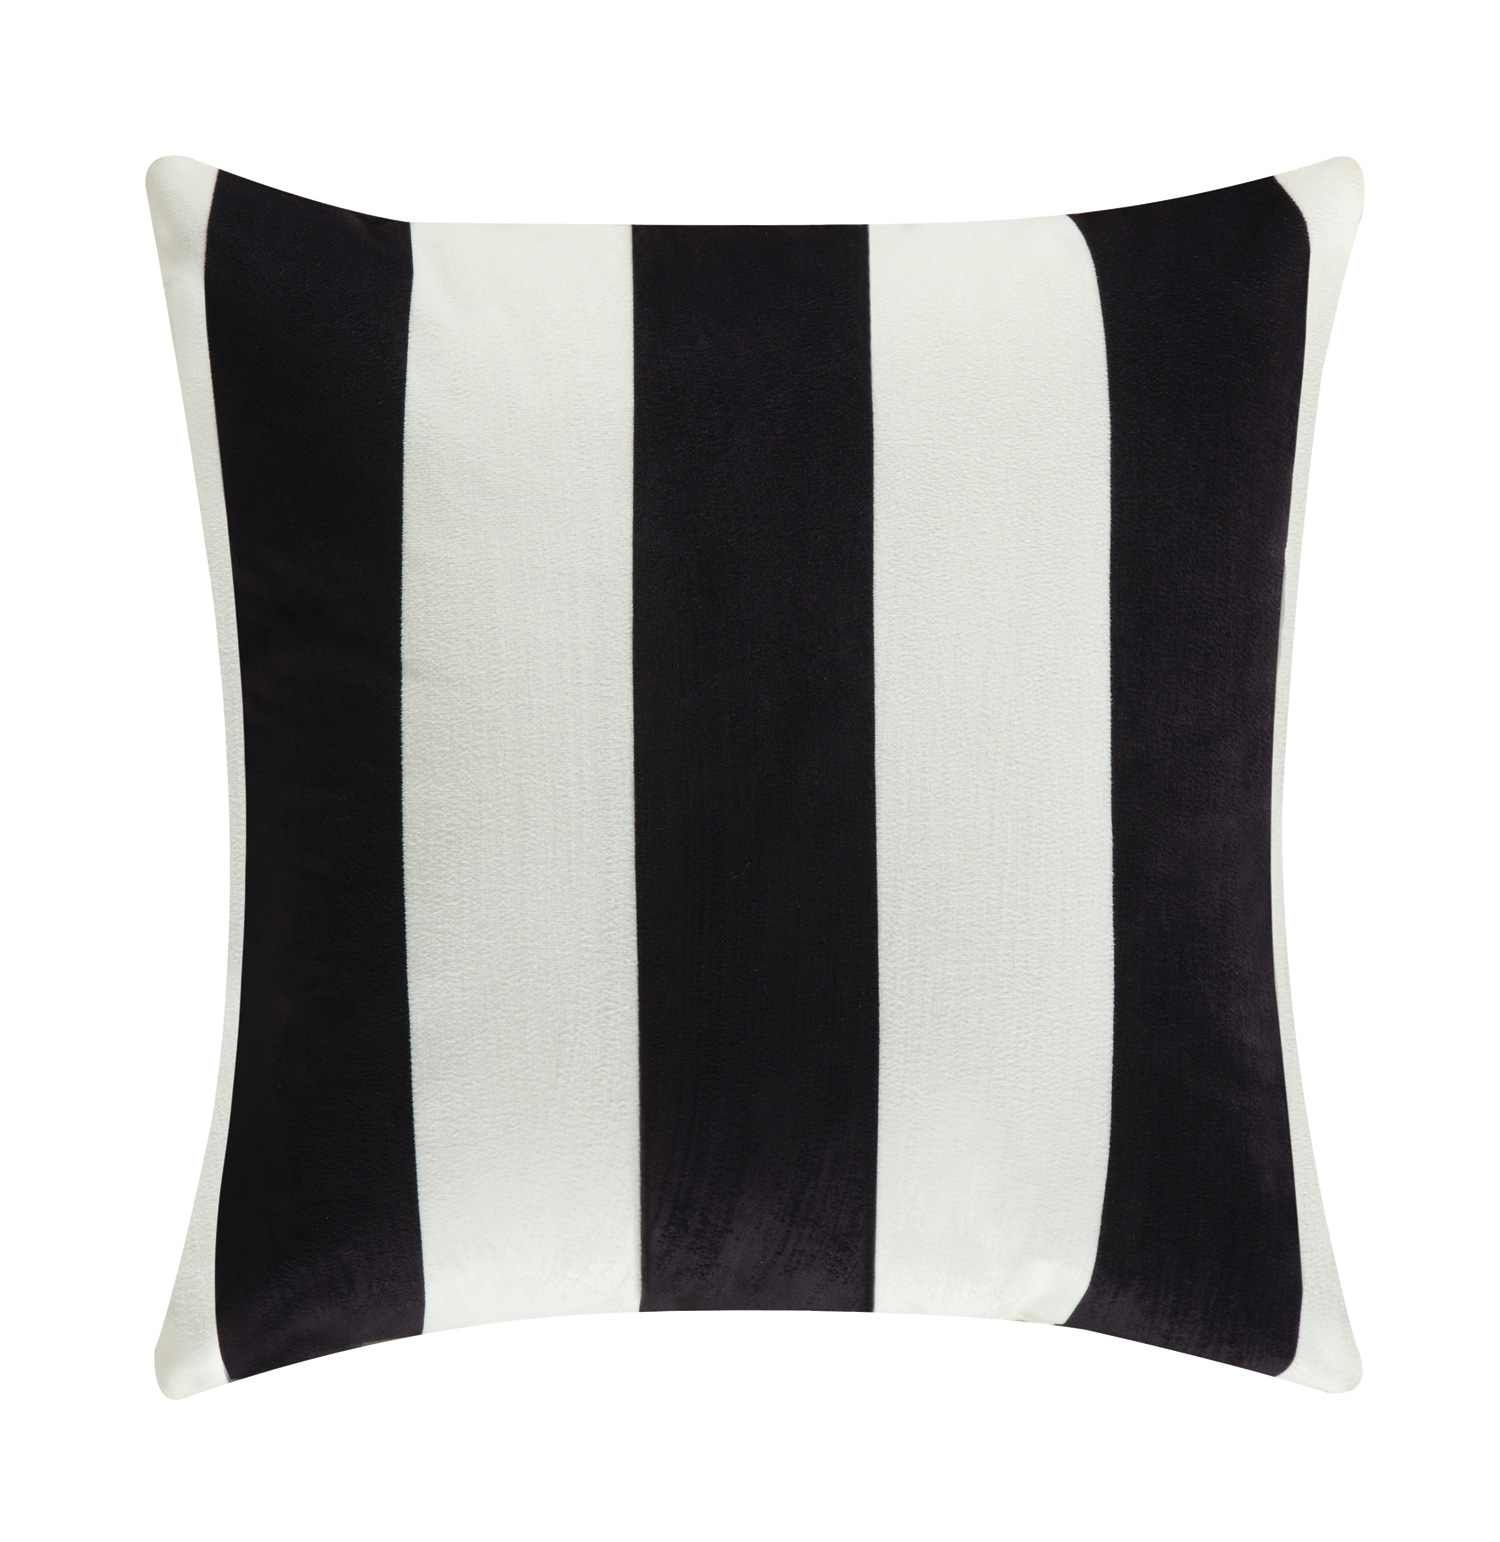 Black And White Modern Pillow Httpwwwagmfurniturecomaccessories 140 Pillowsaccent Pillow Set Of 2 905333Html